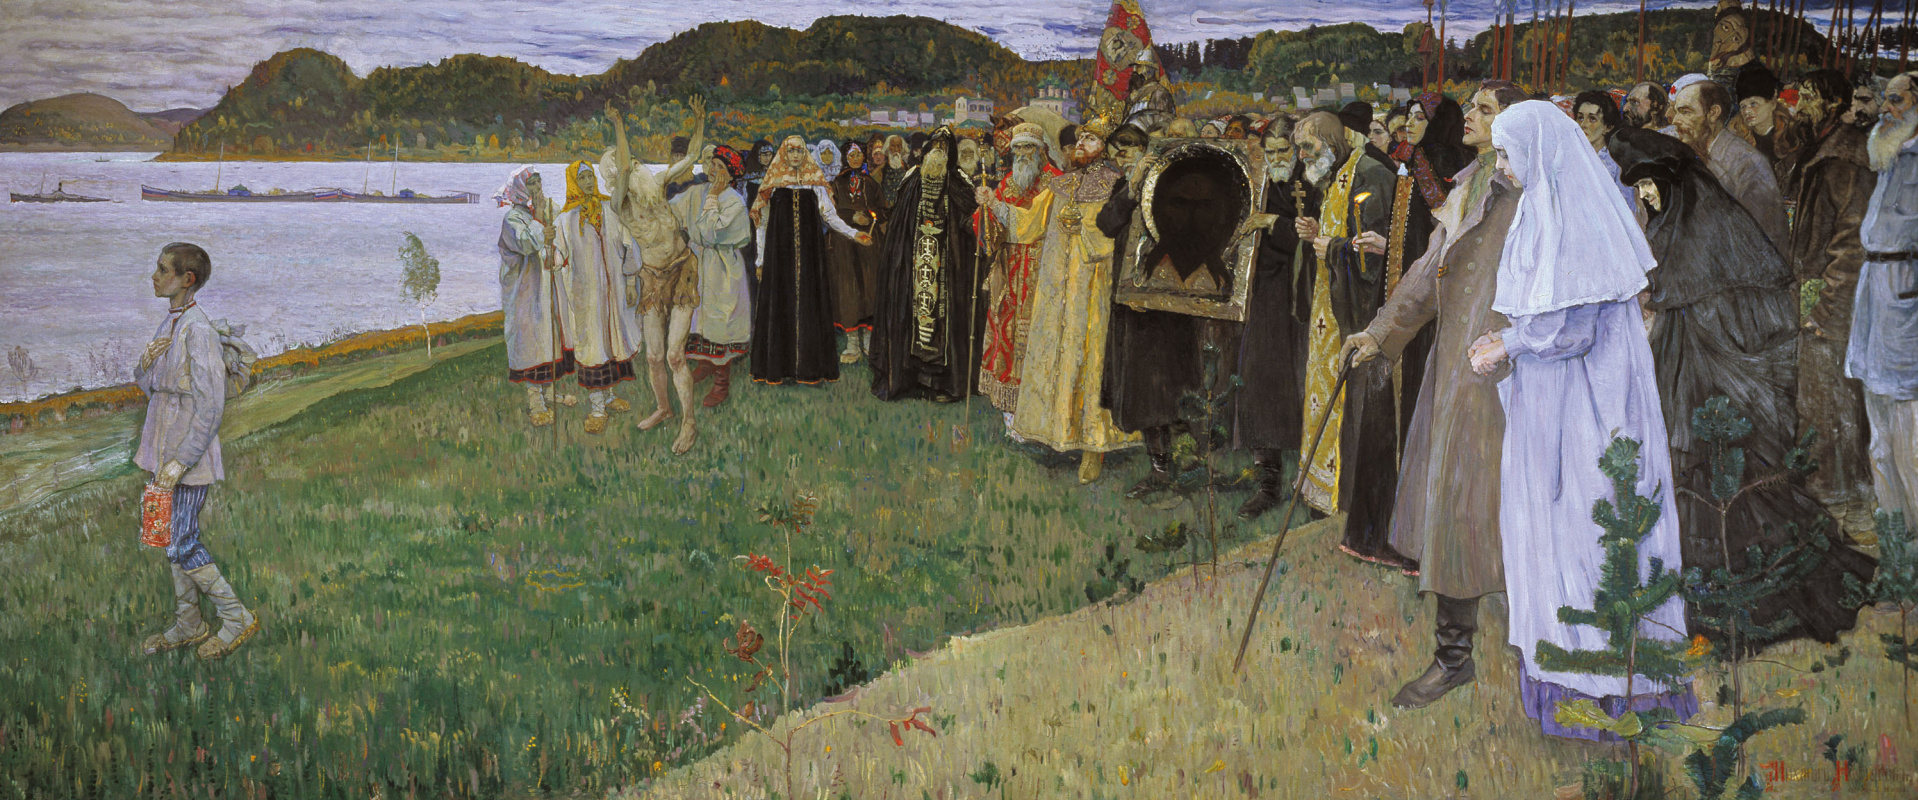 Mikhail Vasilyevich Nesterov. In Russia (Soul of the people)